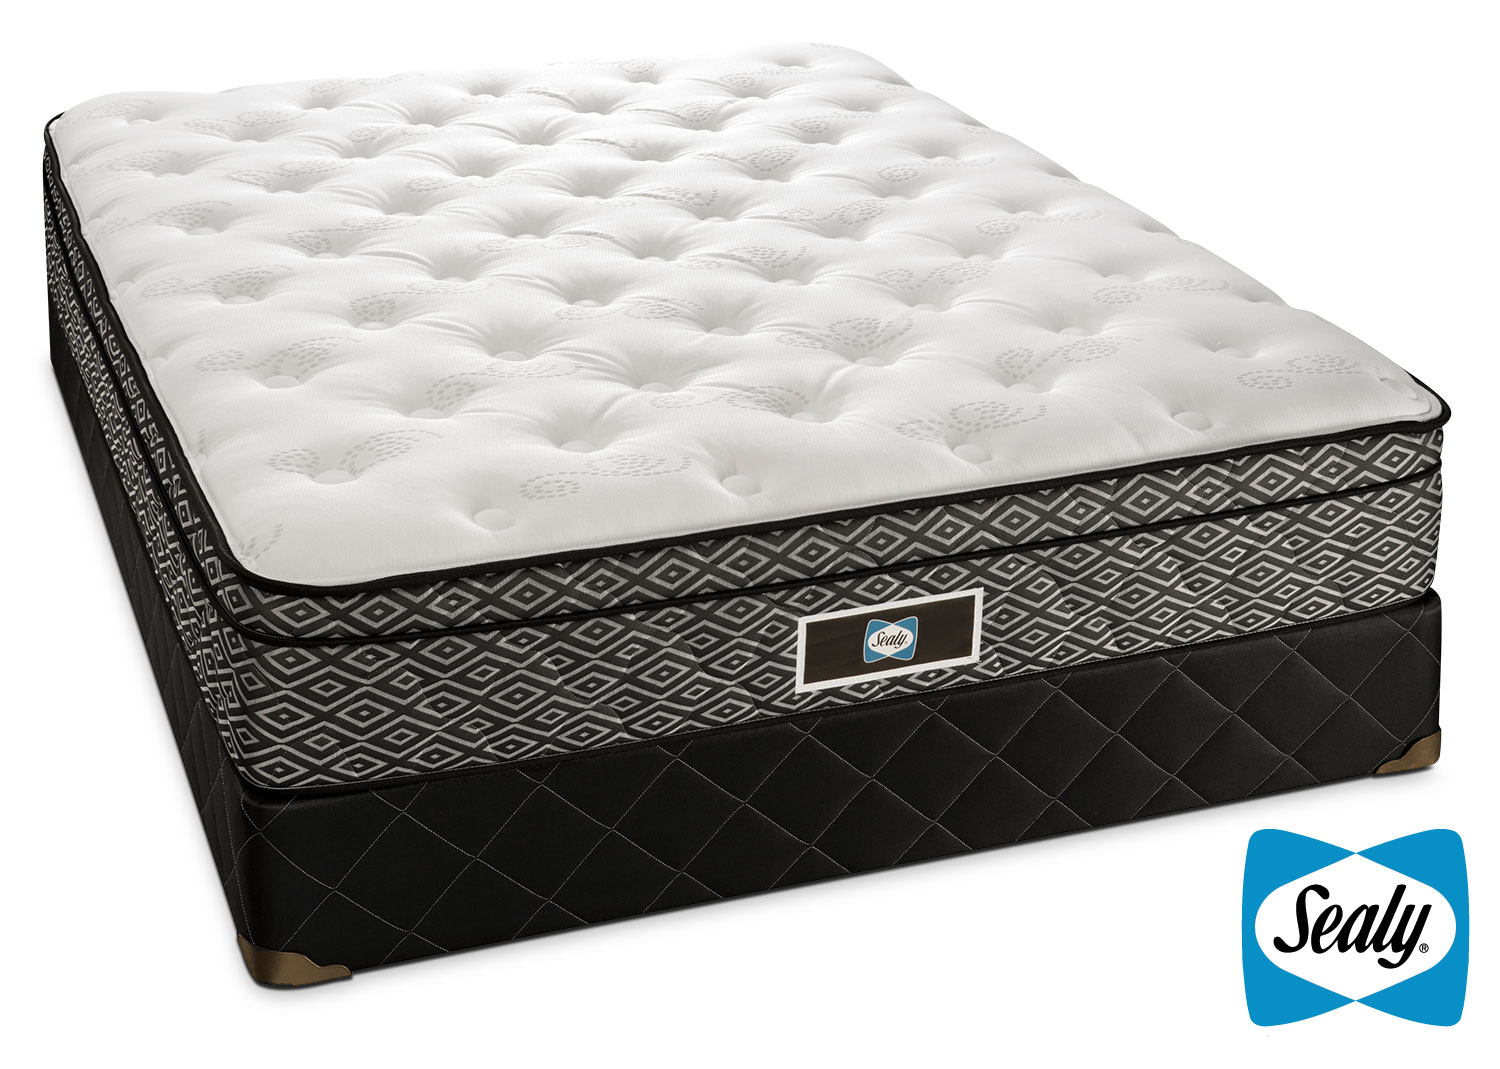 Mattresses and Bedding - Sealy Nero Queen Mattress/Boxspring Set